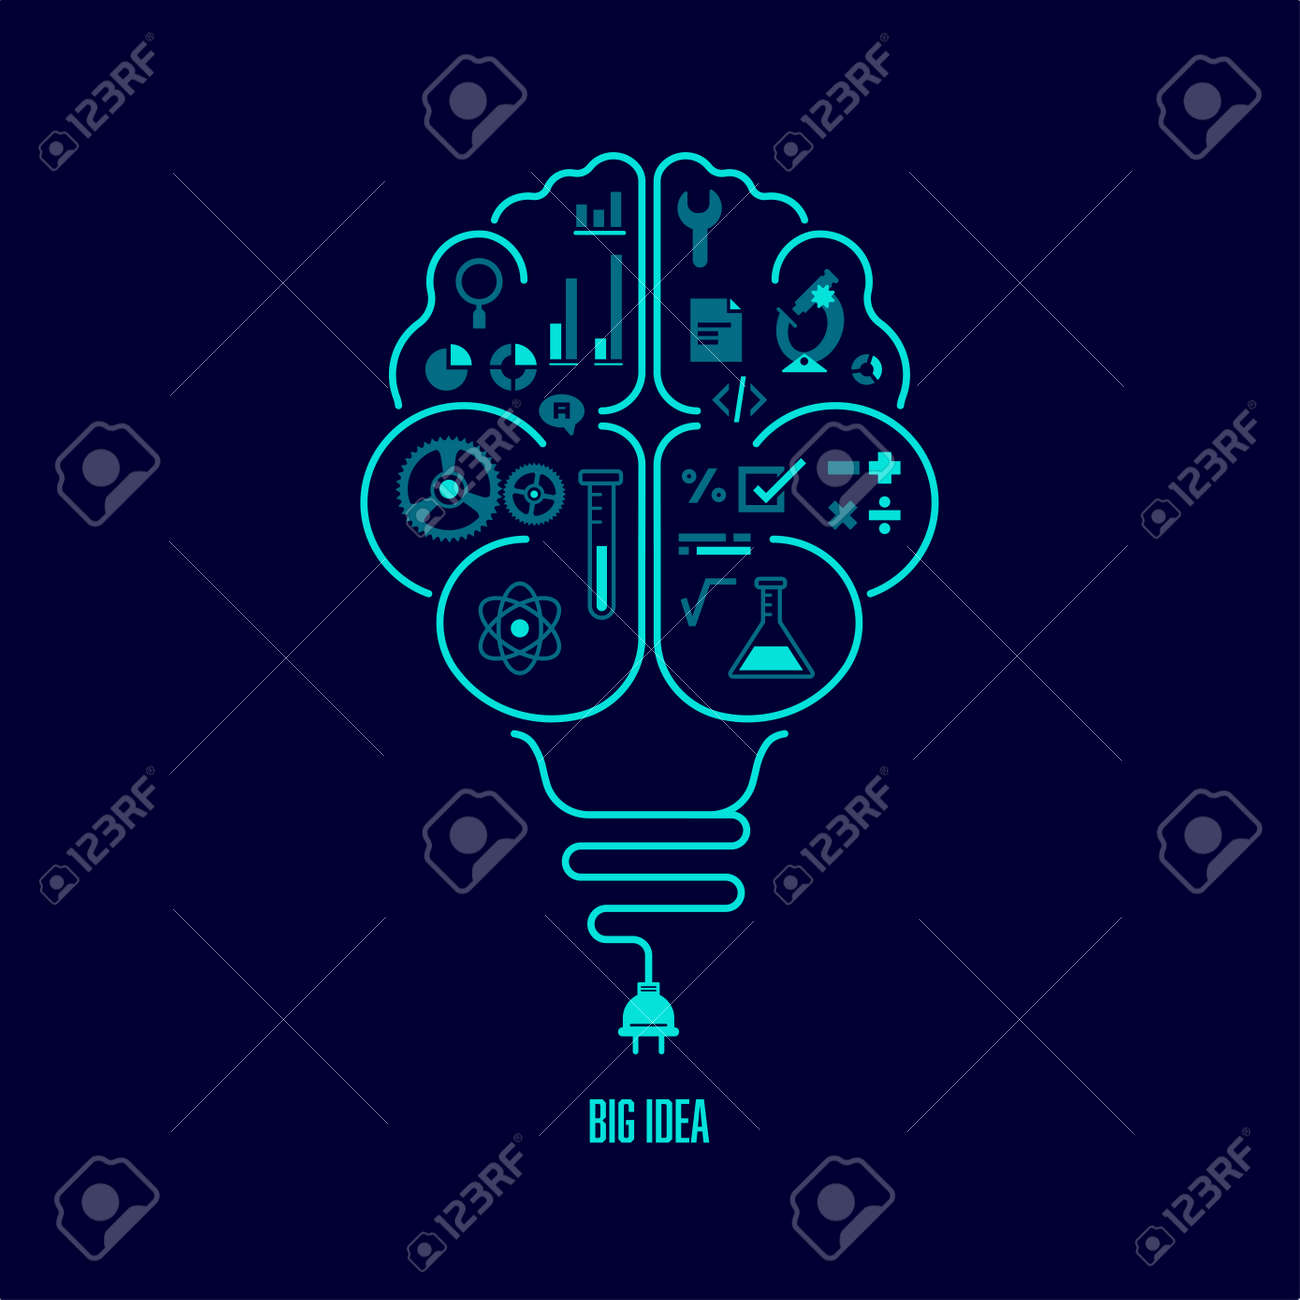 concept of big idea or creative thinking, shape of light bulb combined with human brain - 167242106